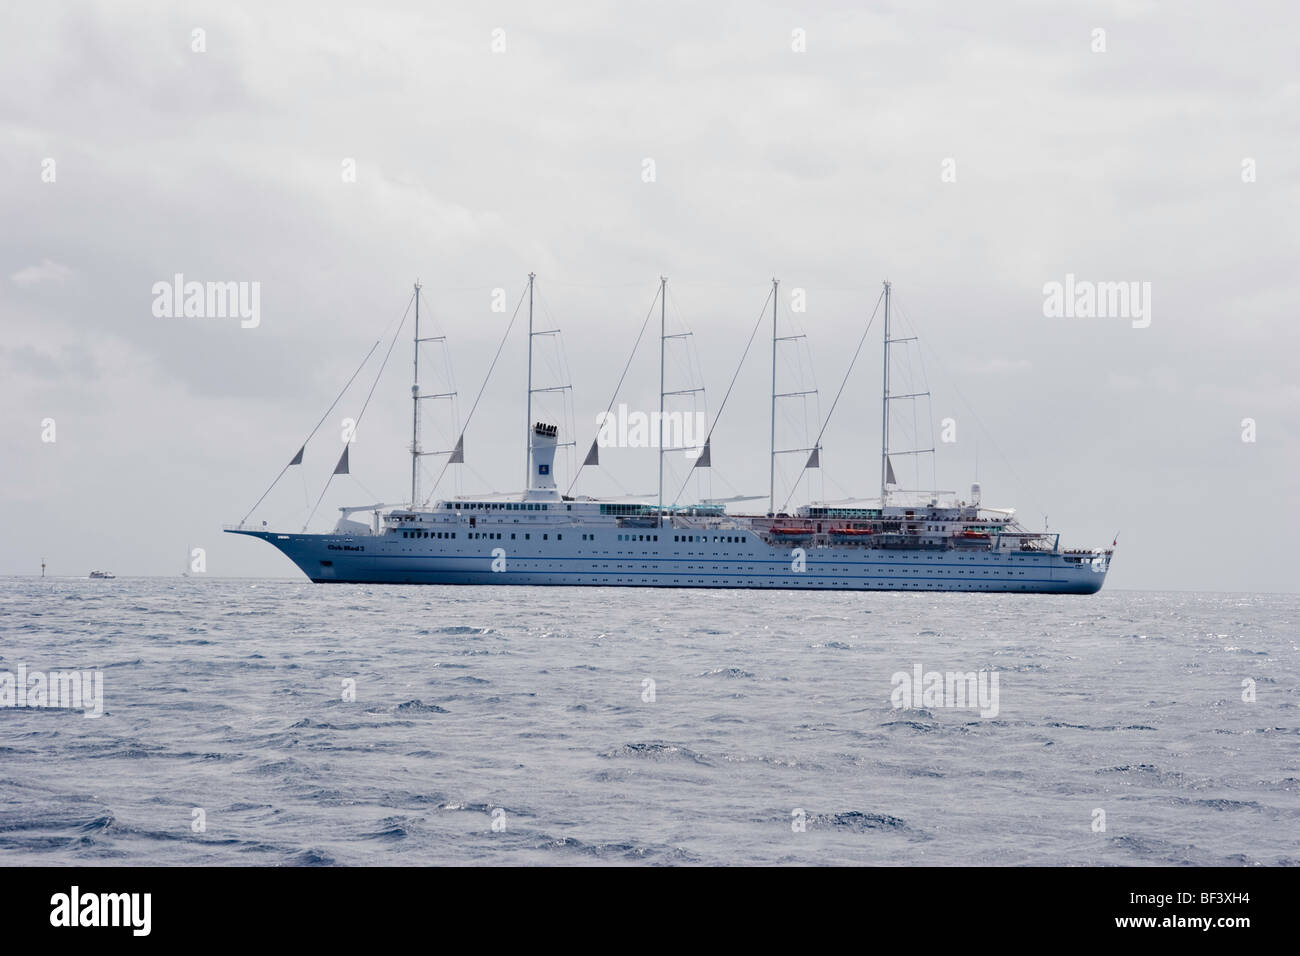 The sailing cruise ship CLUB MED 2 anchored in the lee of Saint Barthelemy (St. Barts) - Stock Image